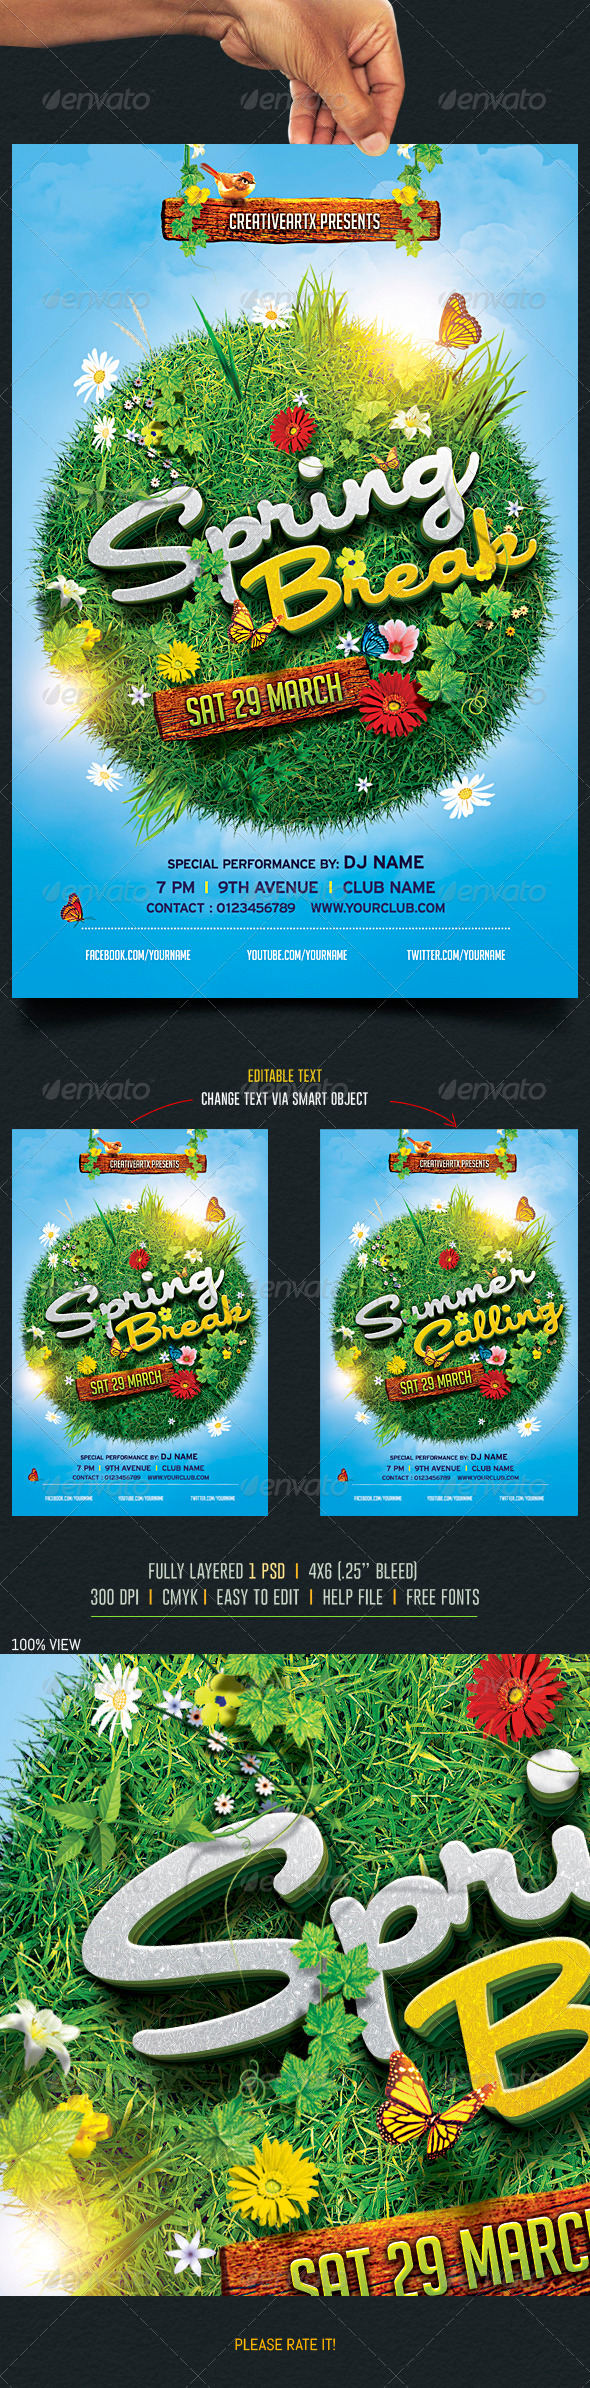 GraphicRiver Spring Break Summer Party Flyer 2 7089040